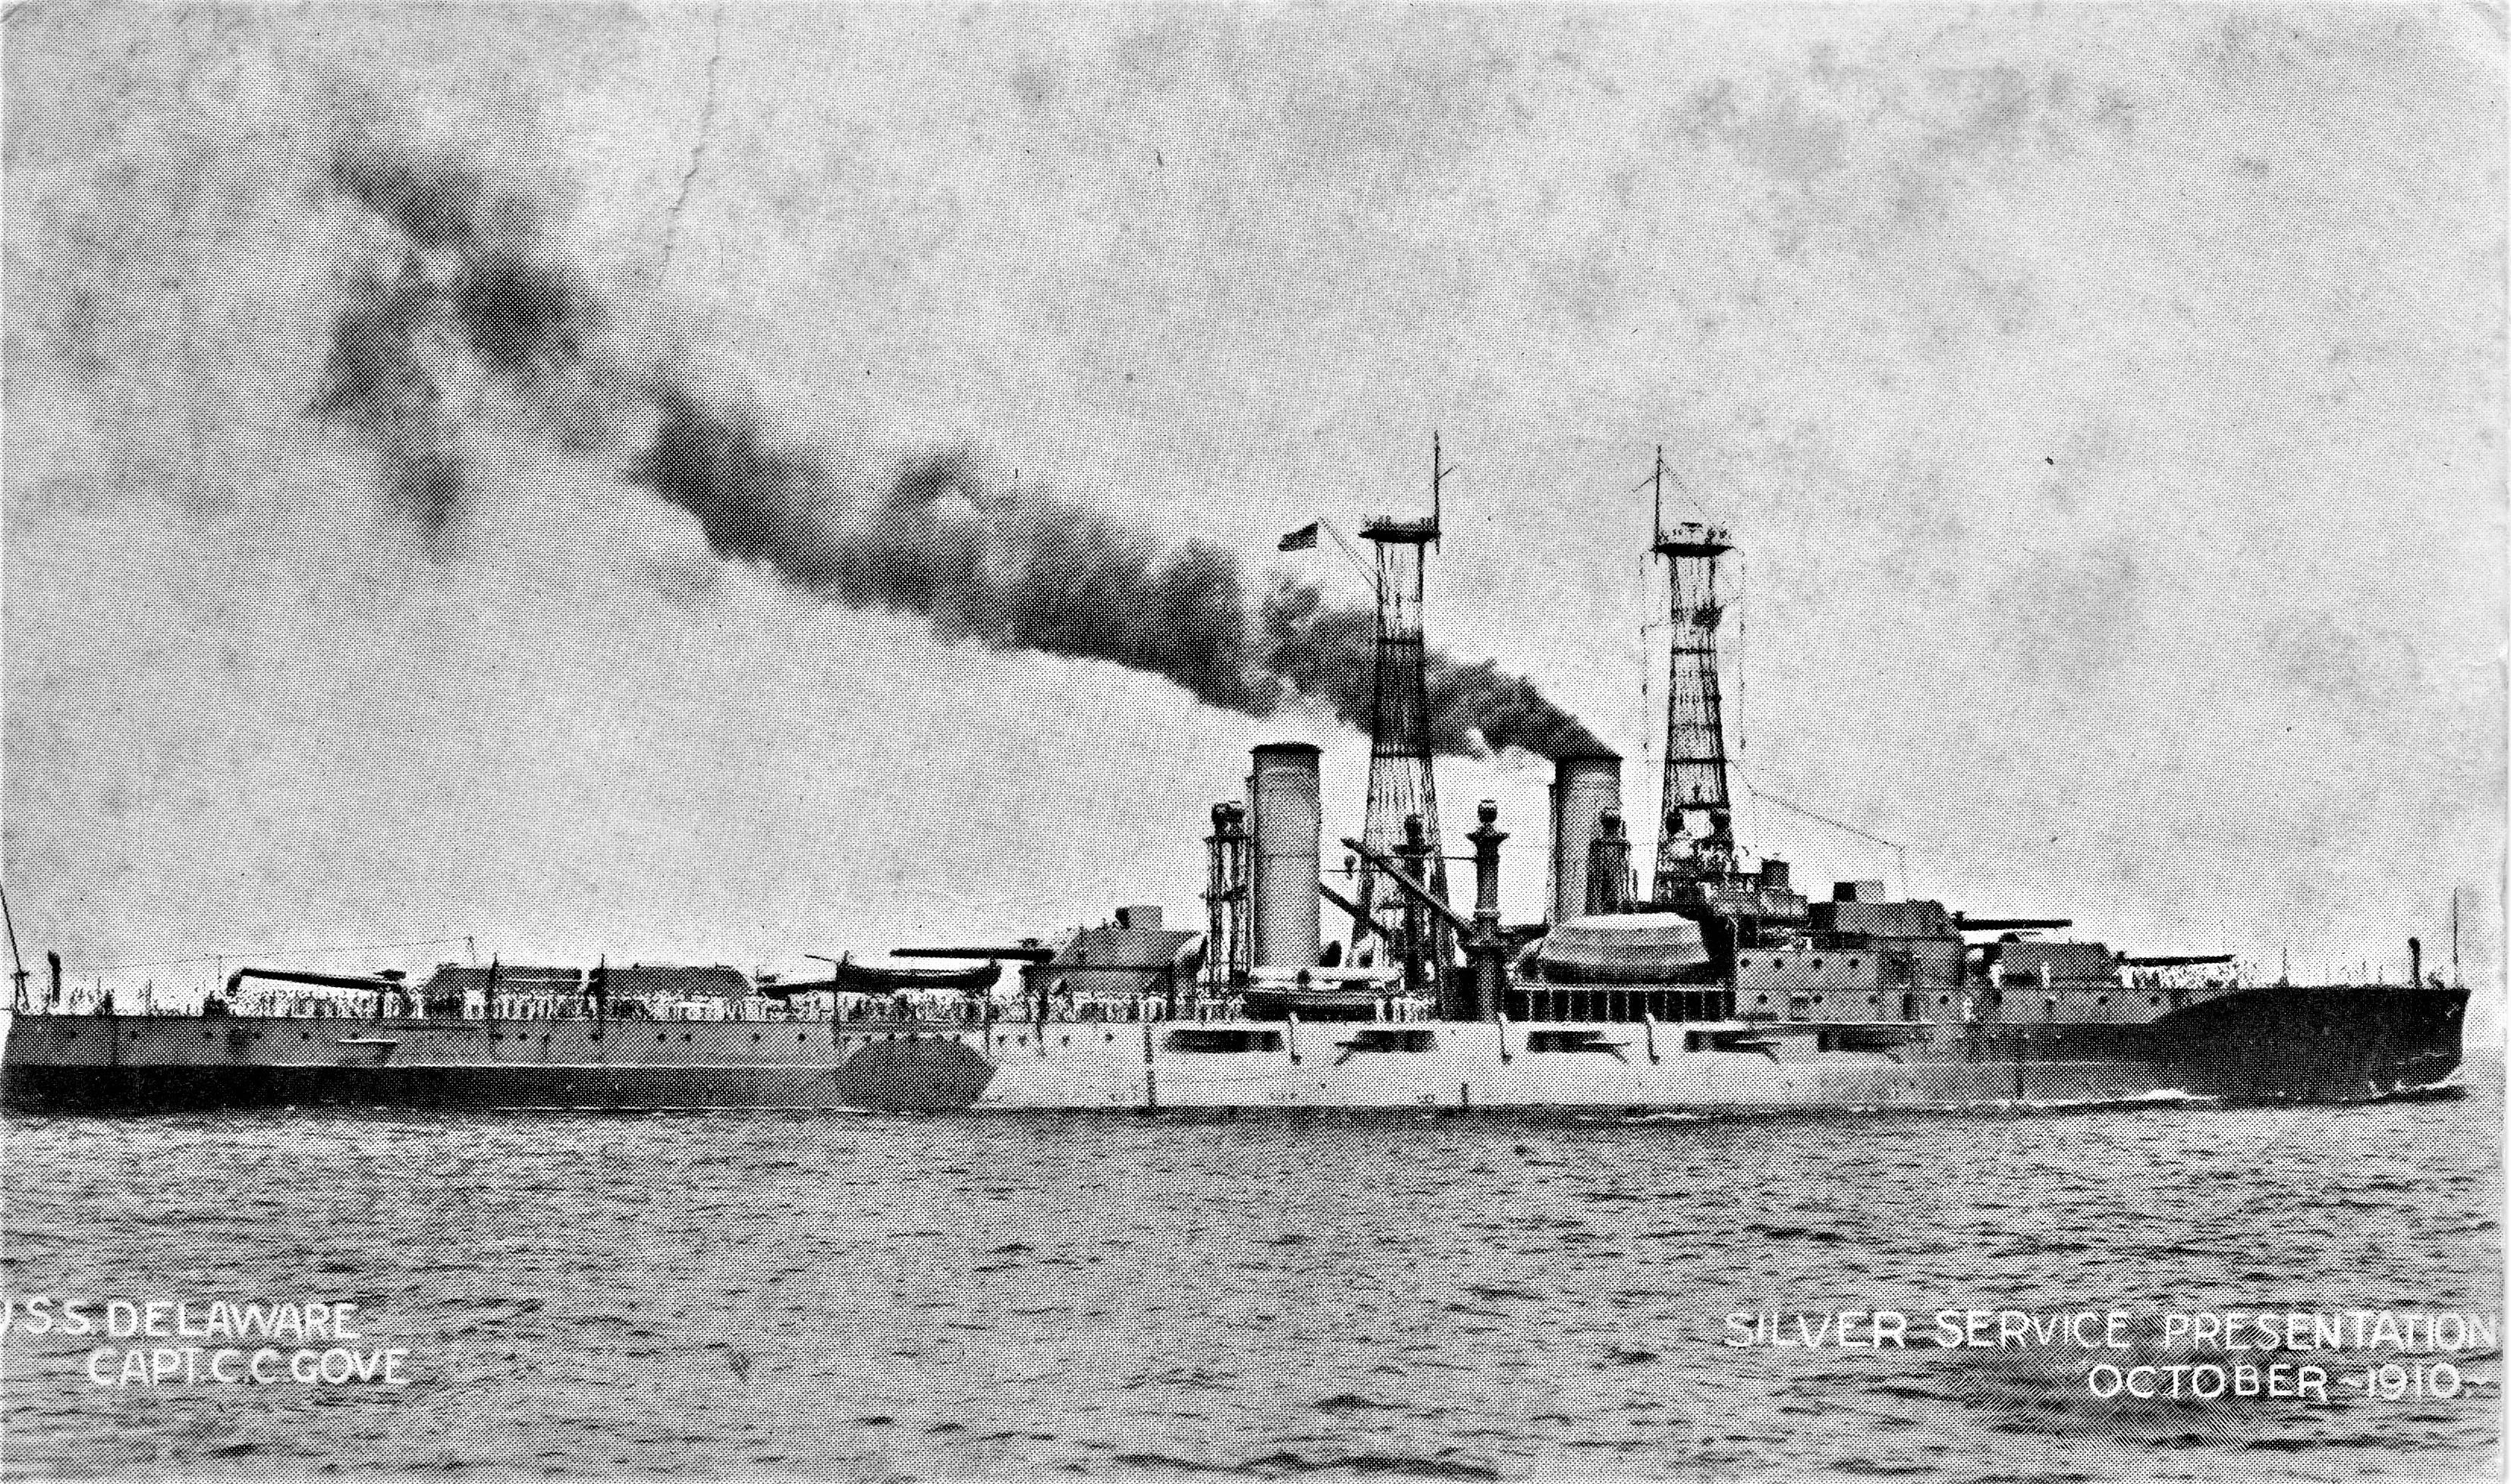 The USS Delaware